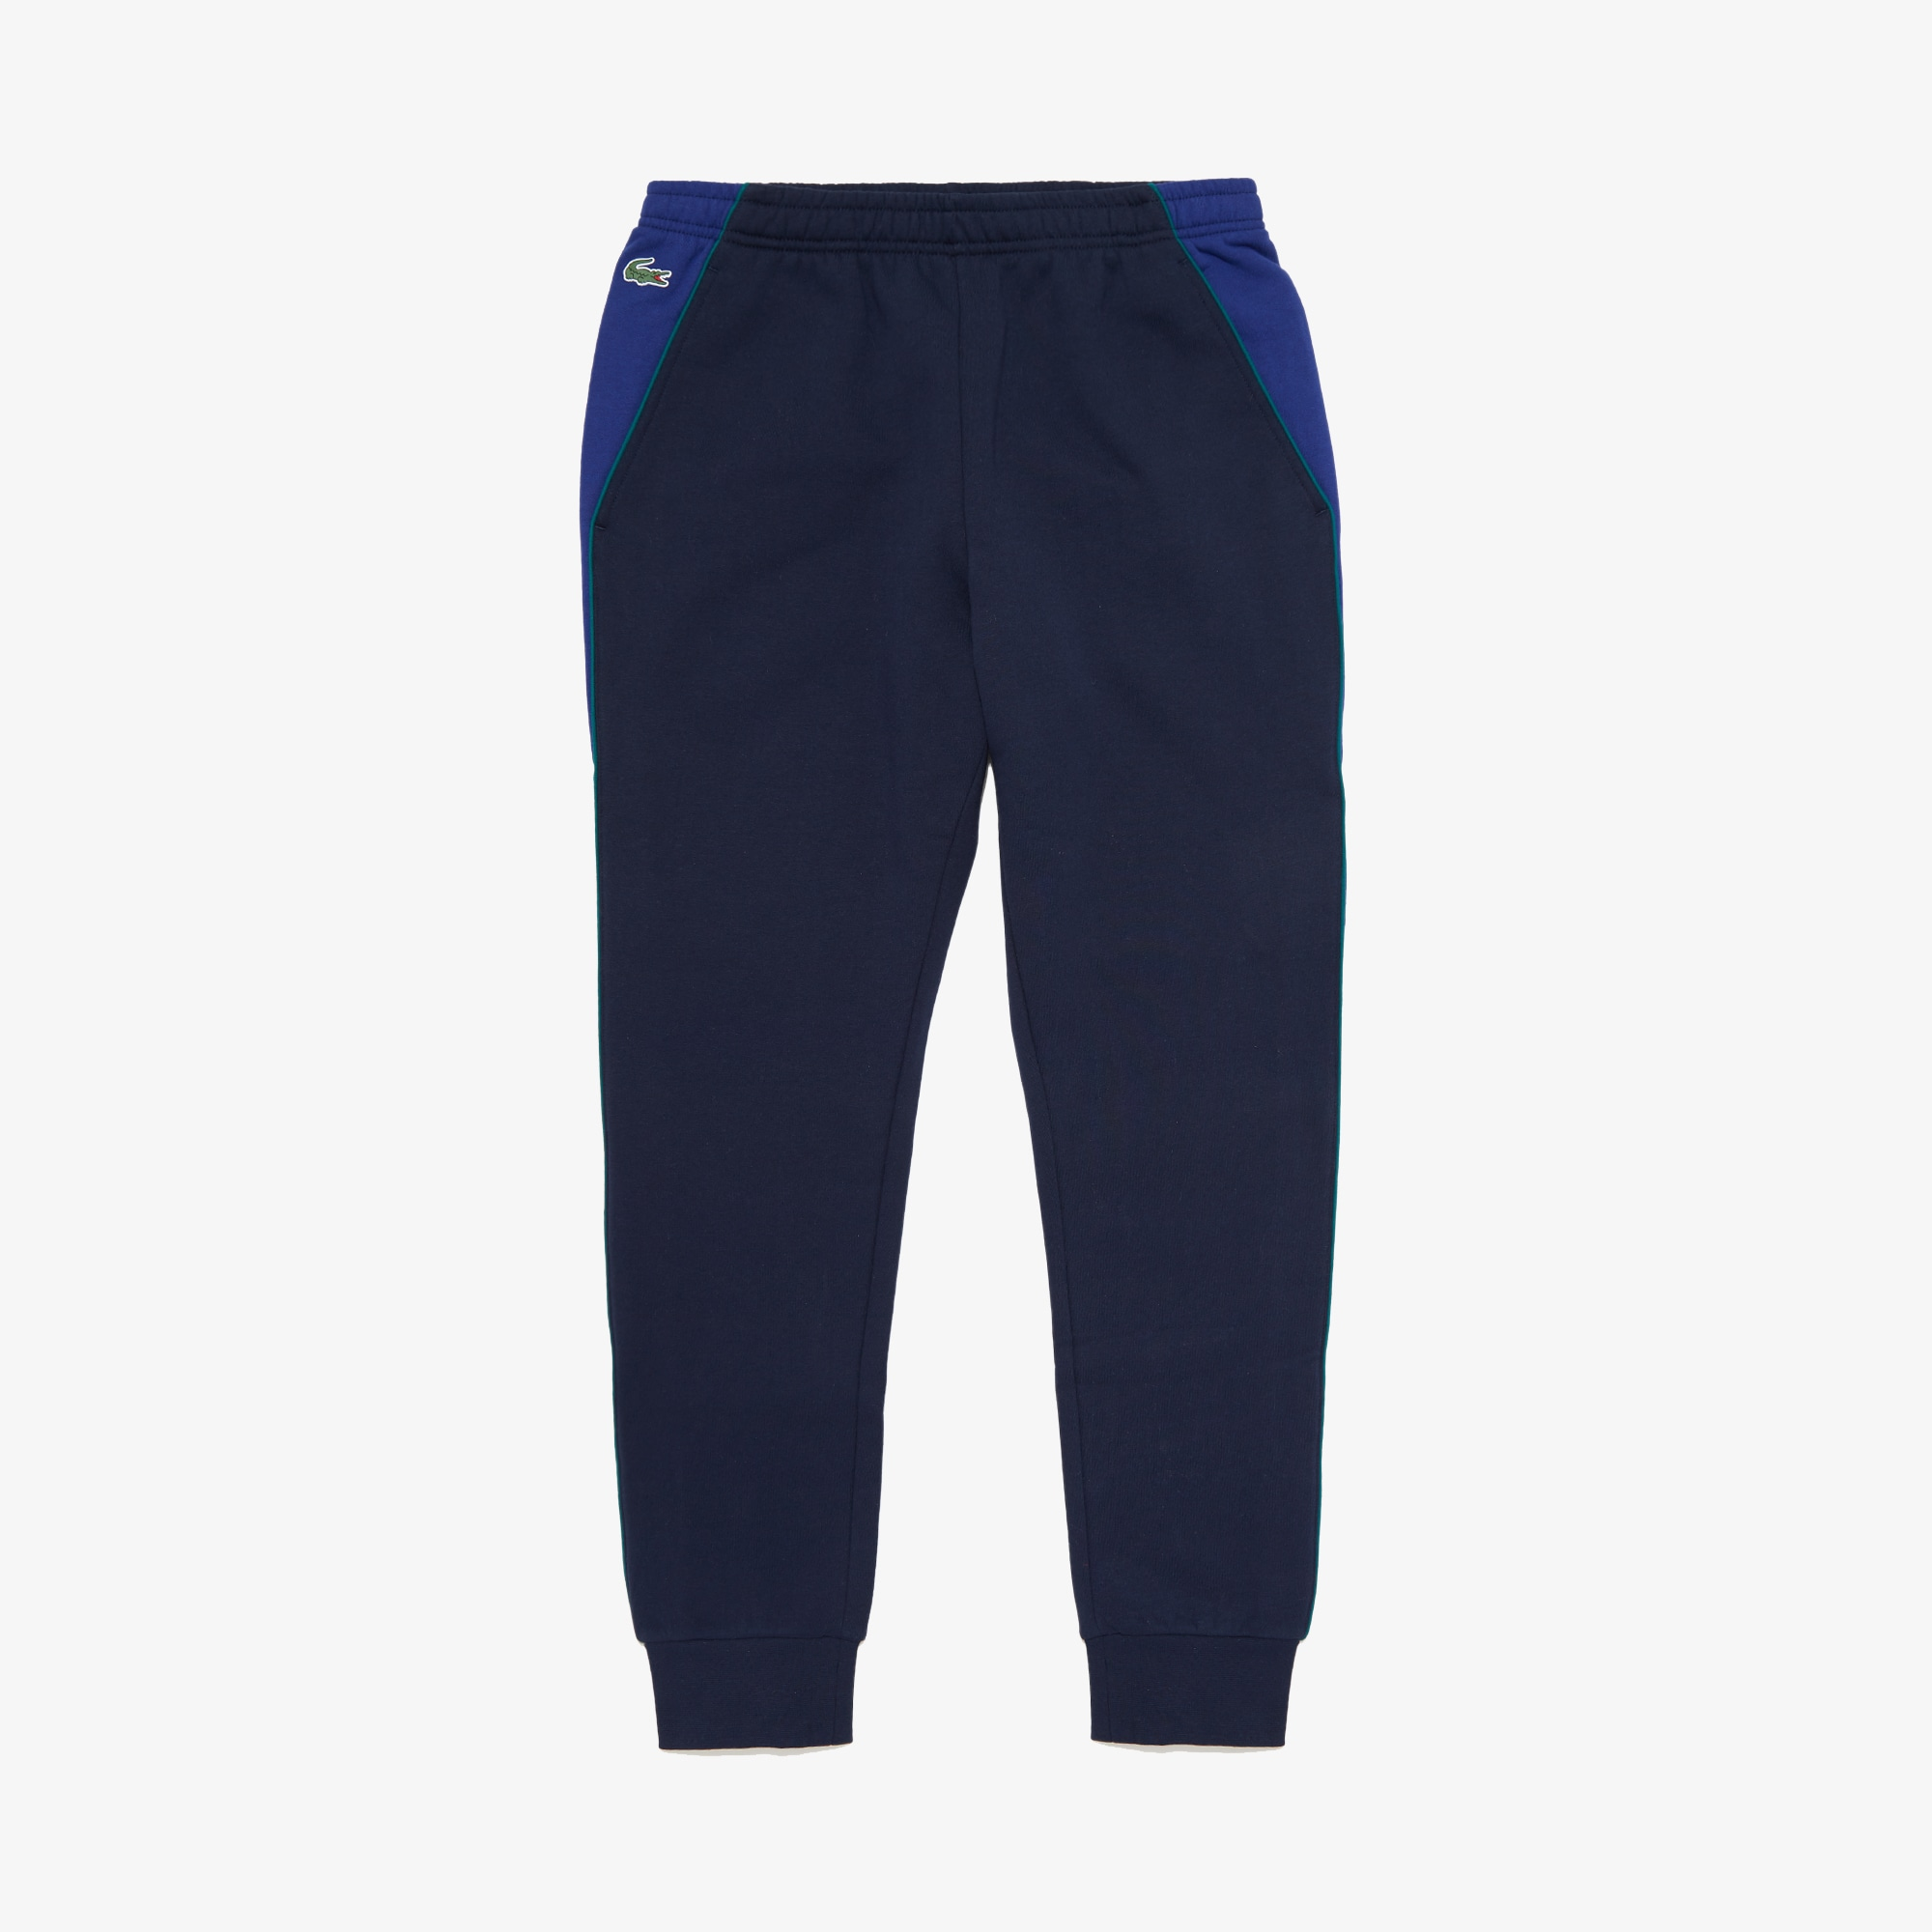 Men's SPORT Colorblock Bands Fleece Sweatpants